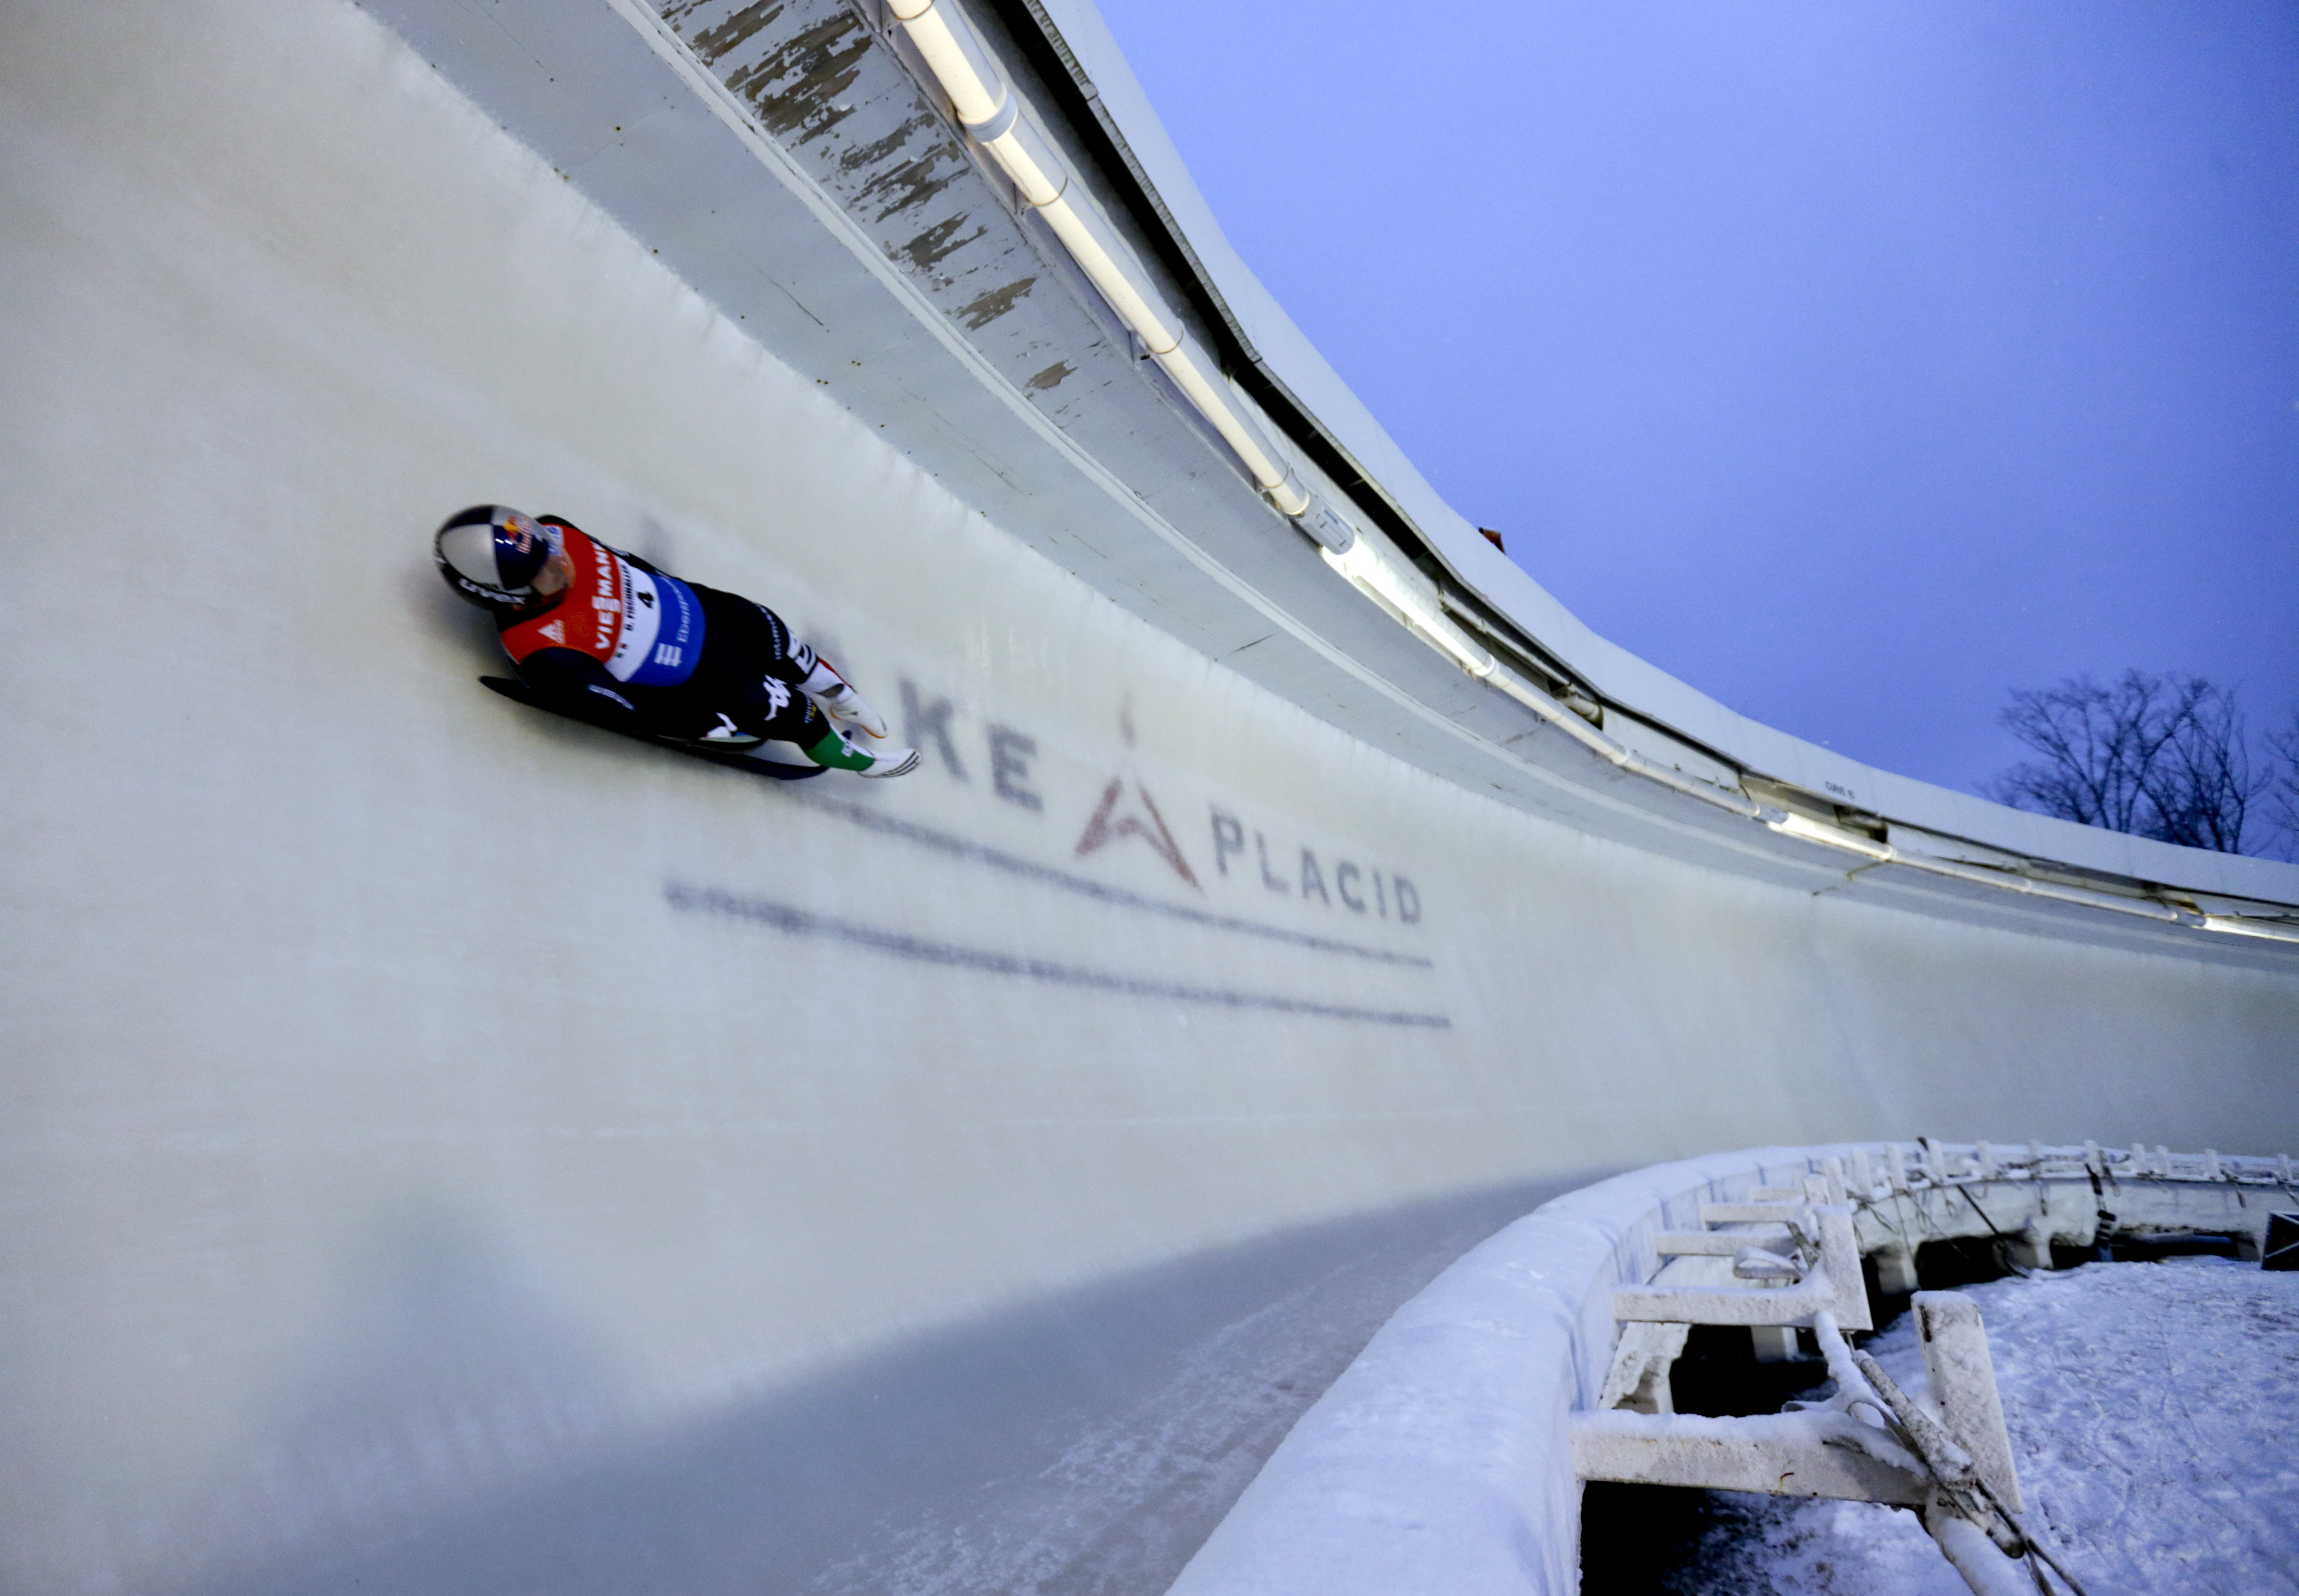 Dominik Fischnaller, of Italy, takes a training run for the men's luge World Cup event on Thursday, Dec. 3, 2015, in Lake Placid, N.Y. Competition begins on Friday. (AP Photo/Mike Groll)